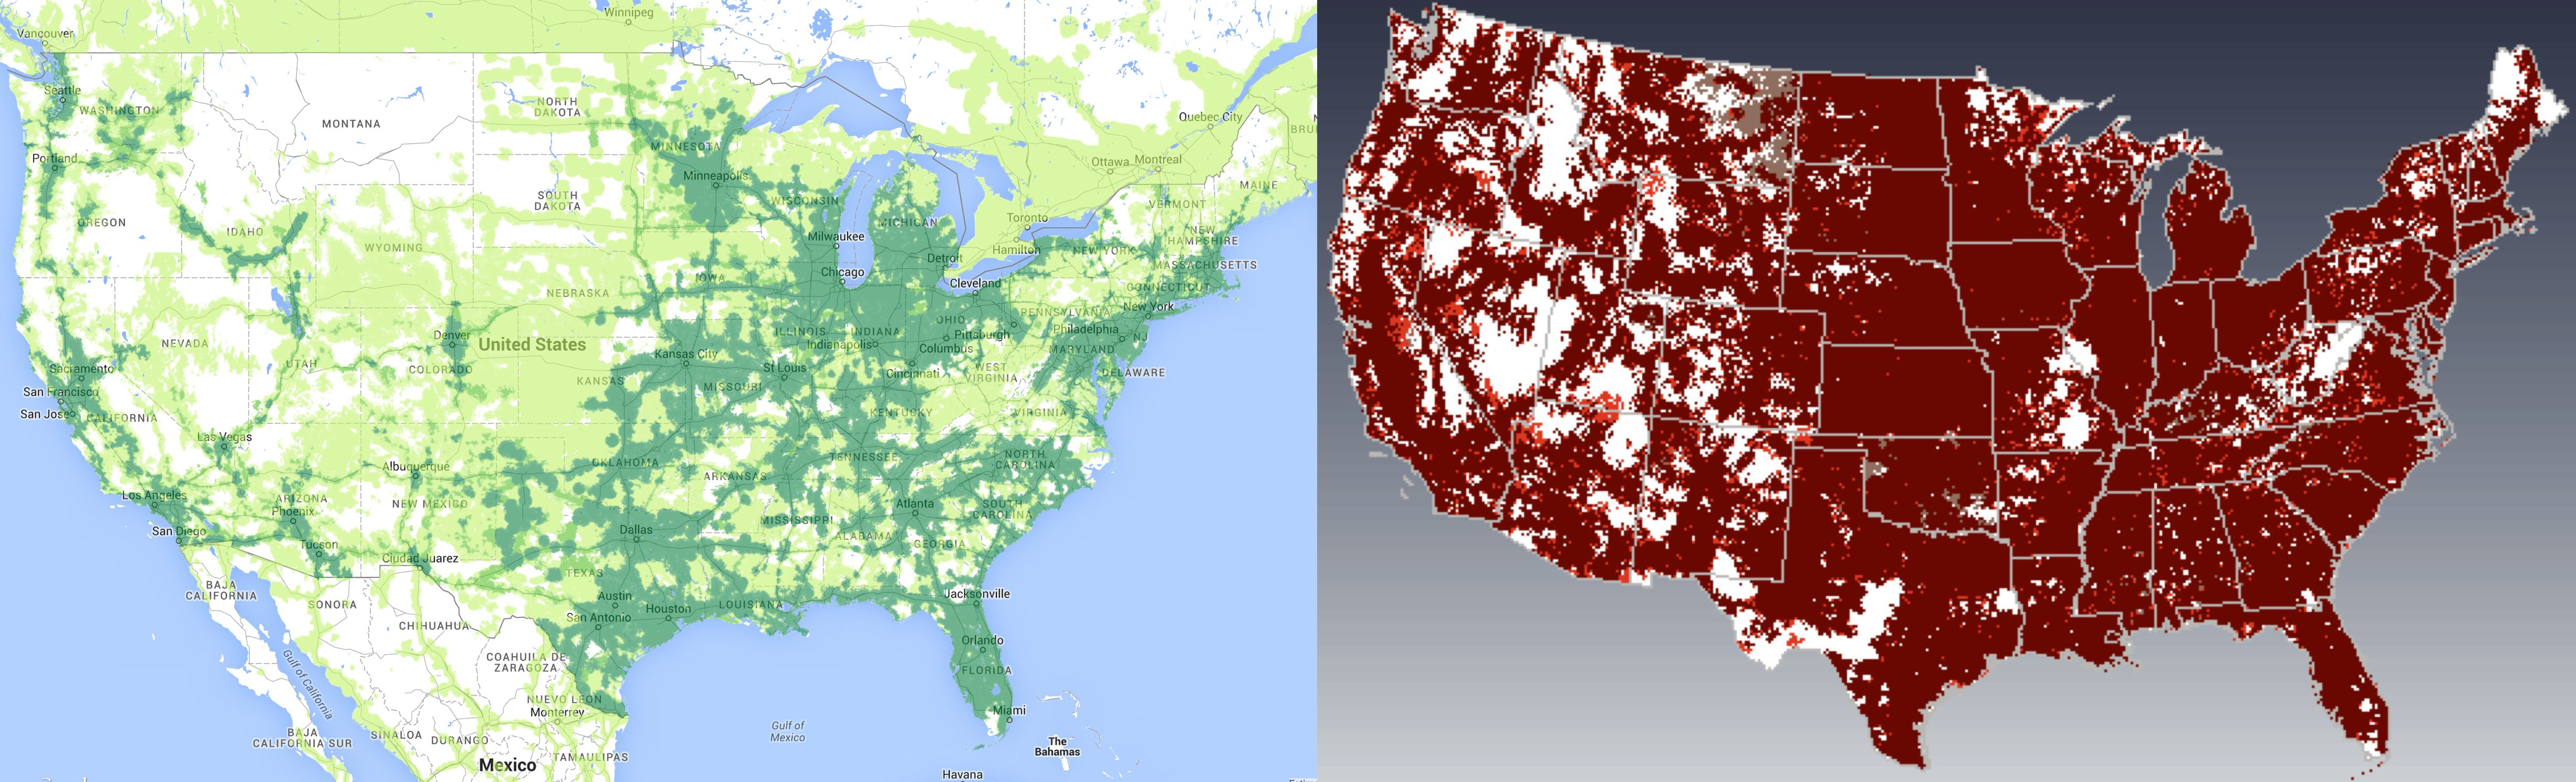 How Does Google Fis Coverage Compare To ATT And Verizon The Verge - Us cellular coverage map vs verizon